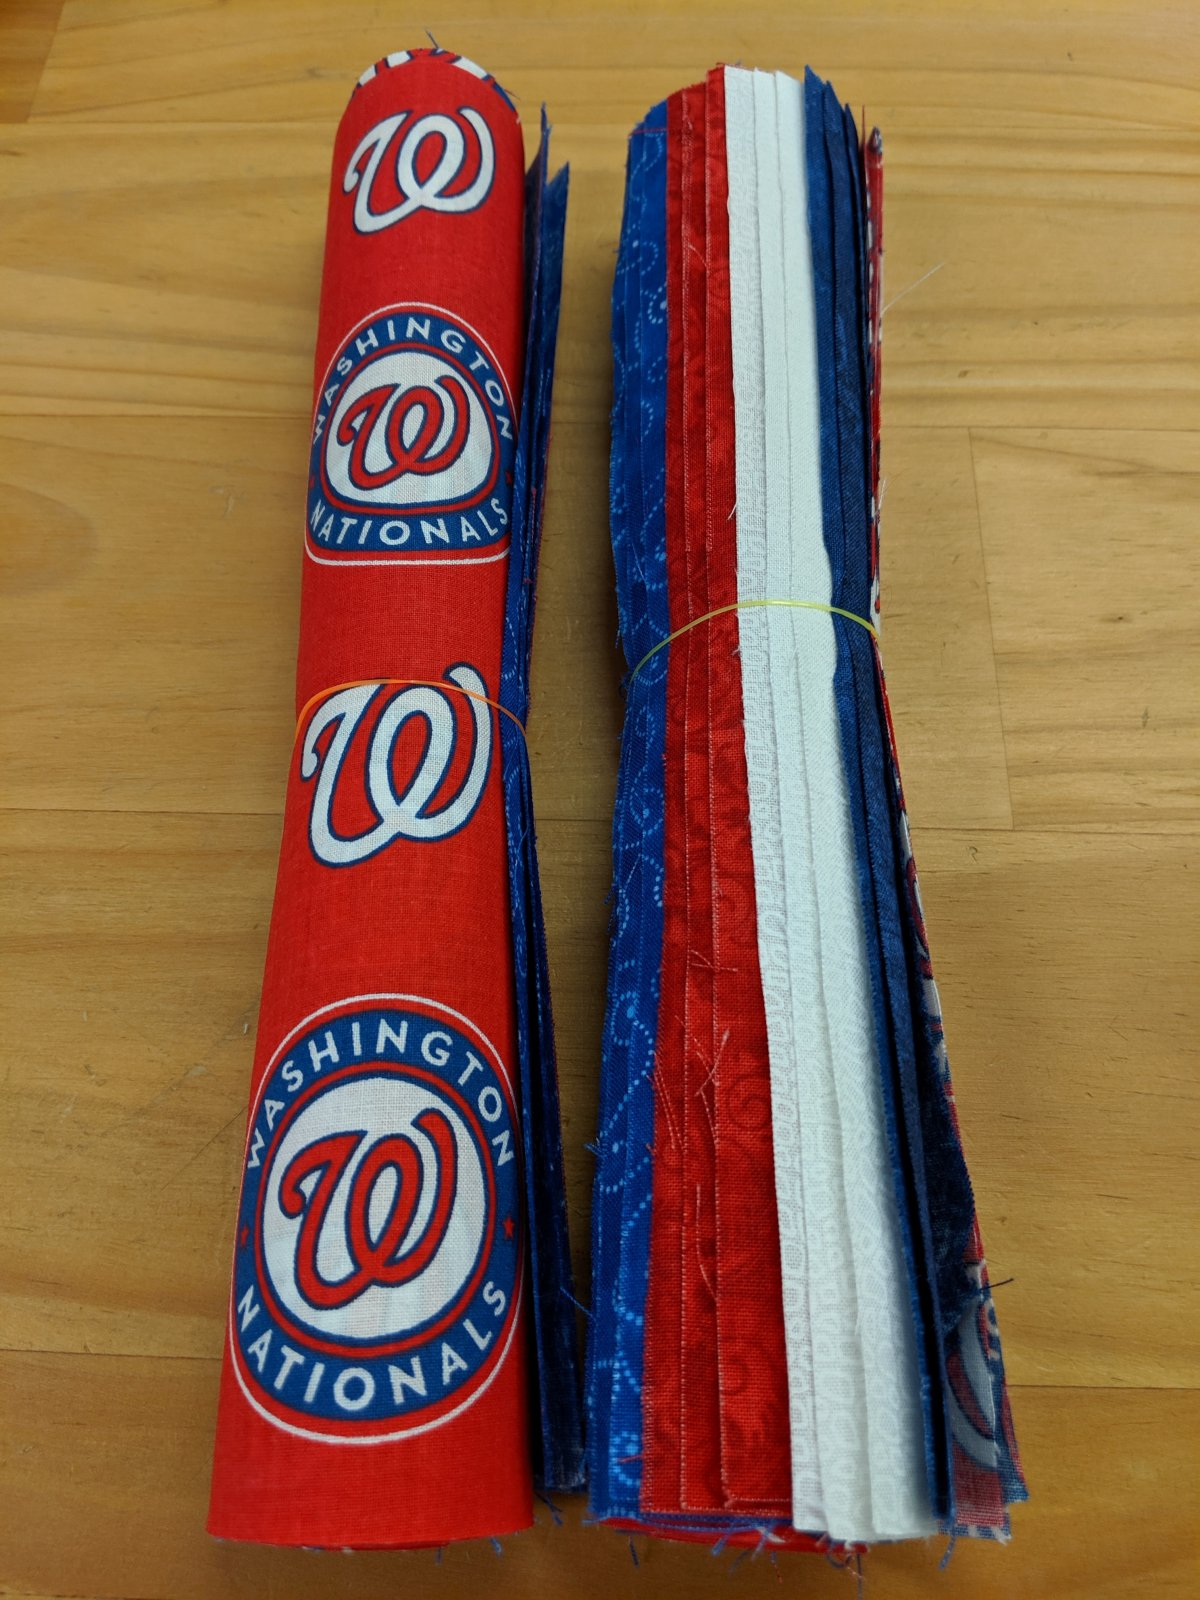 Washington Nationals Themed Roll of 10 Inch Squares